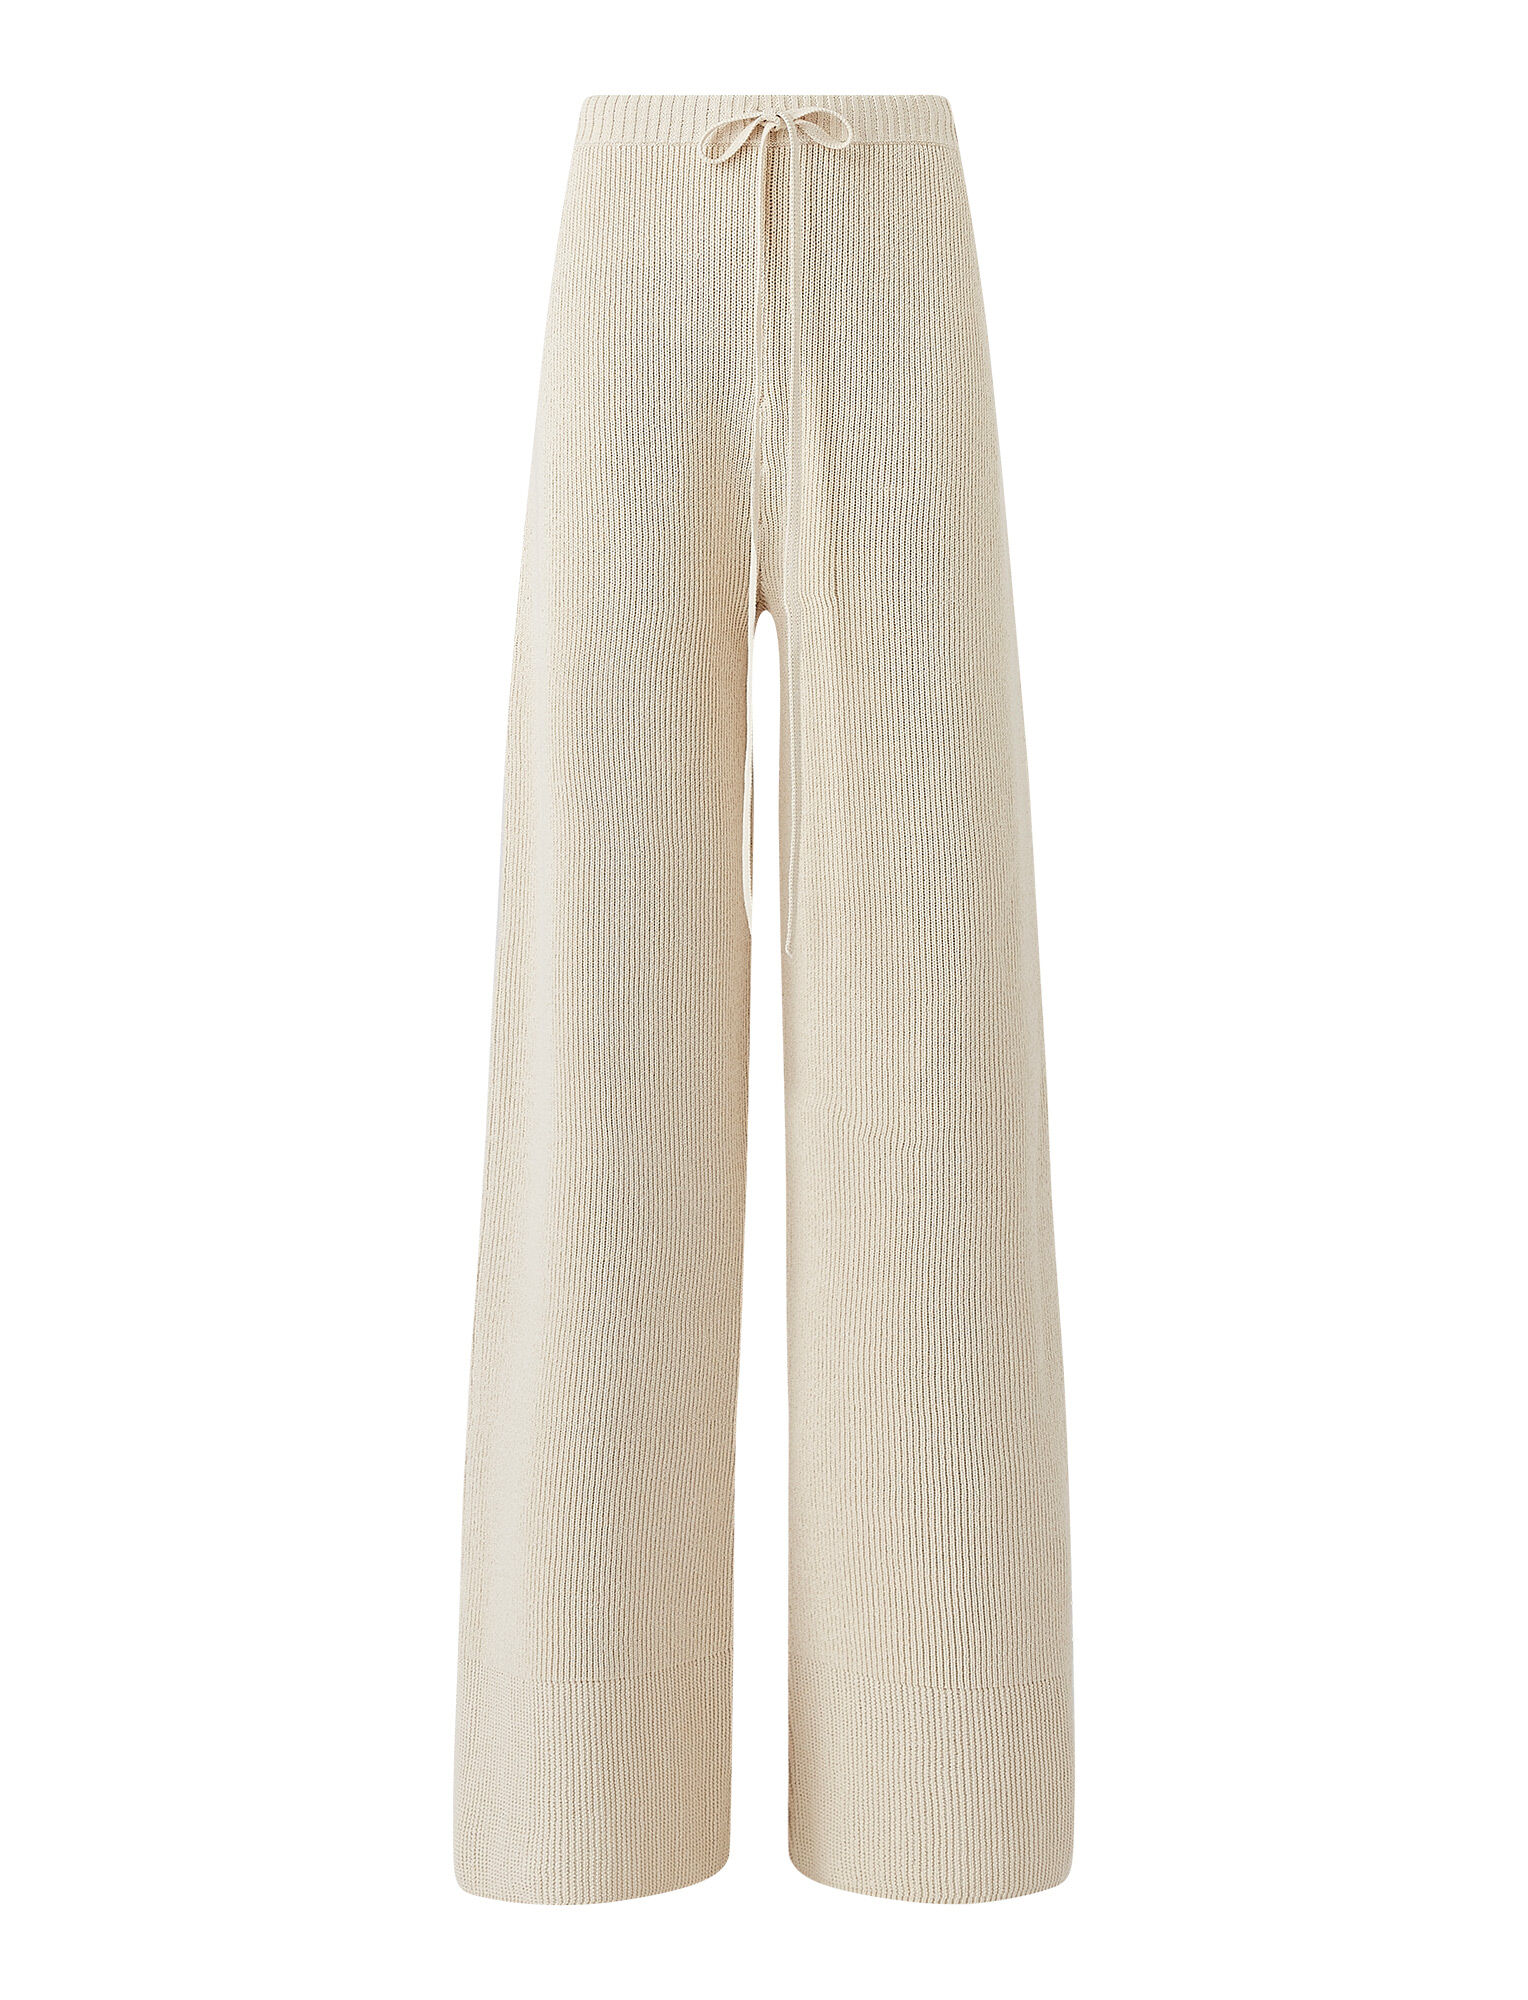 Joseph, Crispy Cotton Trousers, in PORCELAIN